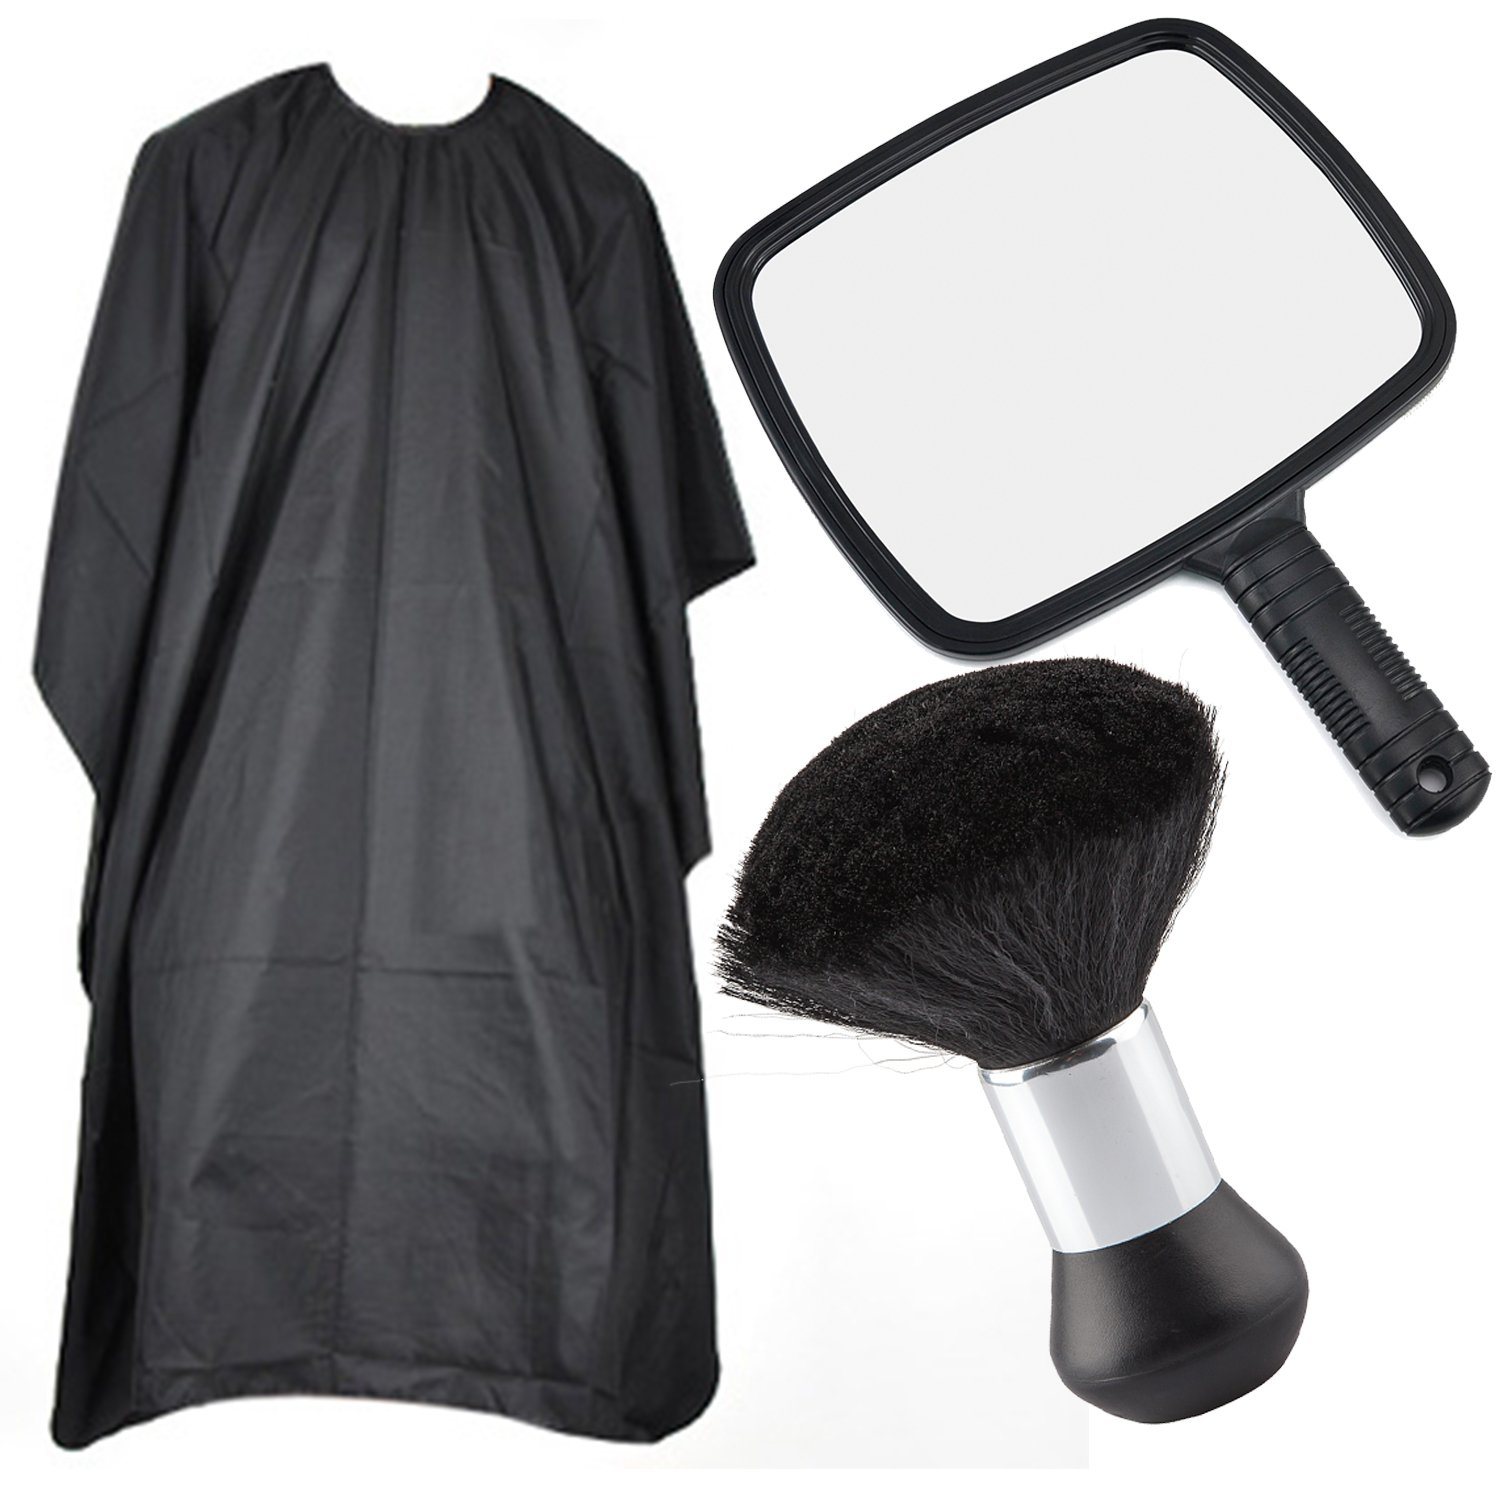 Hairdressers Pack Includes Mirror, Hairdressing Gown Cape and Neck Brush Barbers Kit 3 Piece Hair Cutting Set - By Trixes